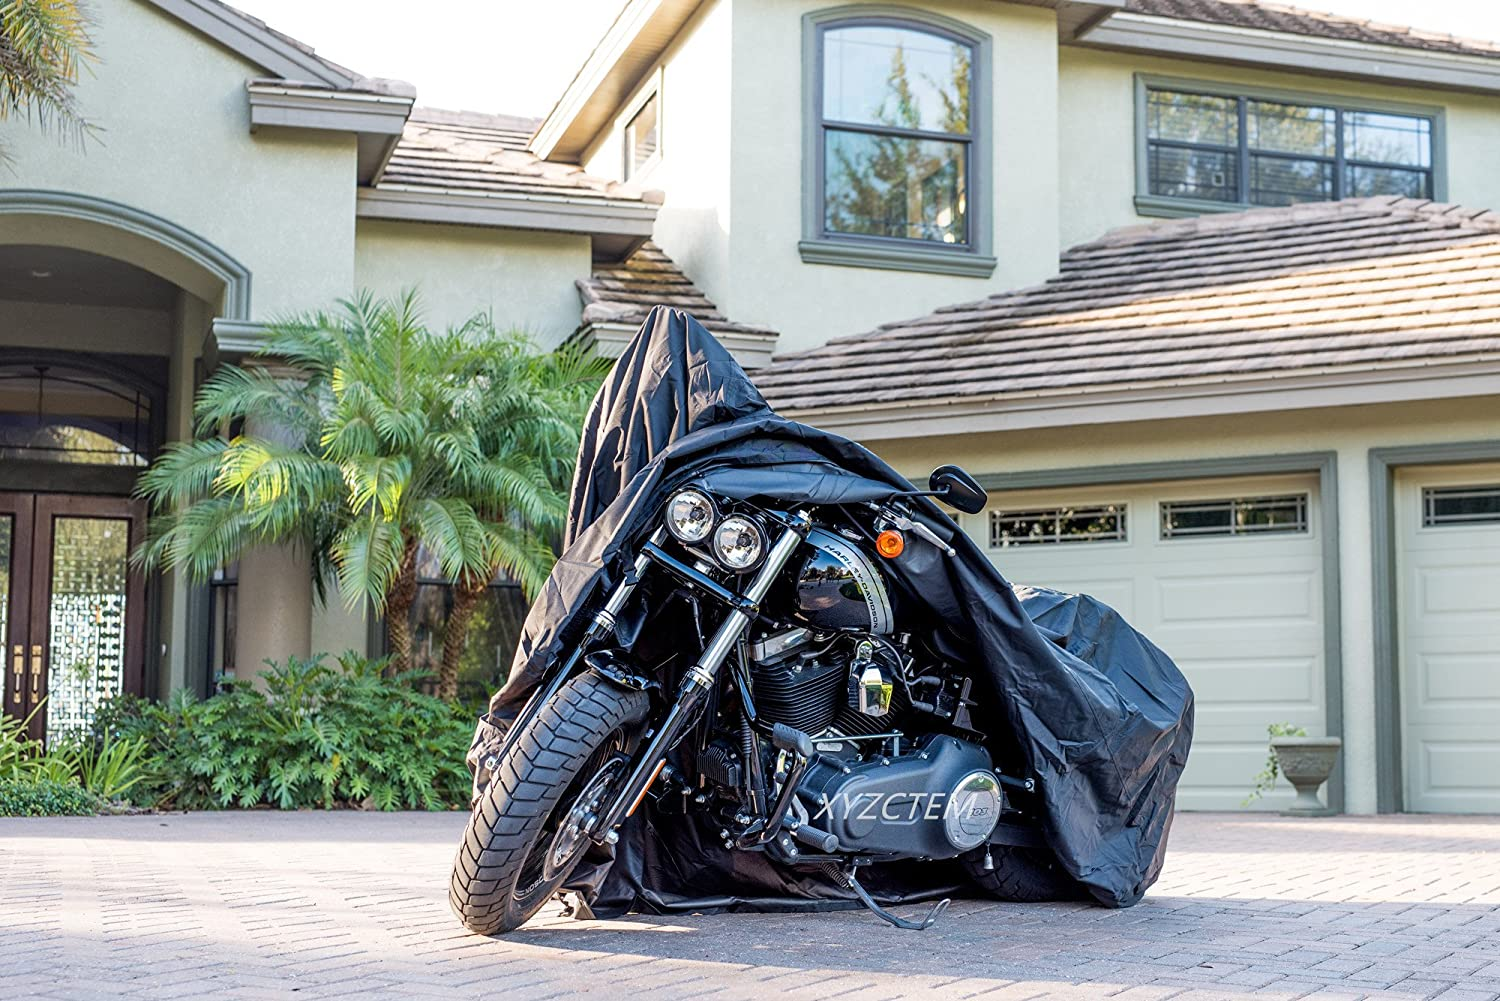 Honda Suzuki,Yamaha and More -1 Year Warranty XYZCTEM All Weather Black XXXL Large Waterproof Outdoor Protects Fits up to 118 inch for Harley Davidson New Generation Motorcycle cover